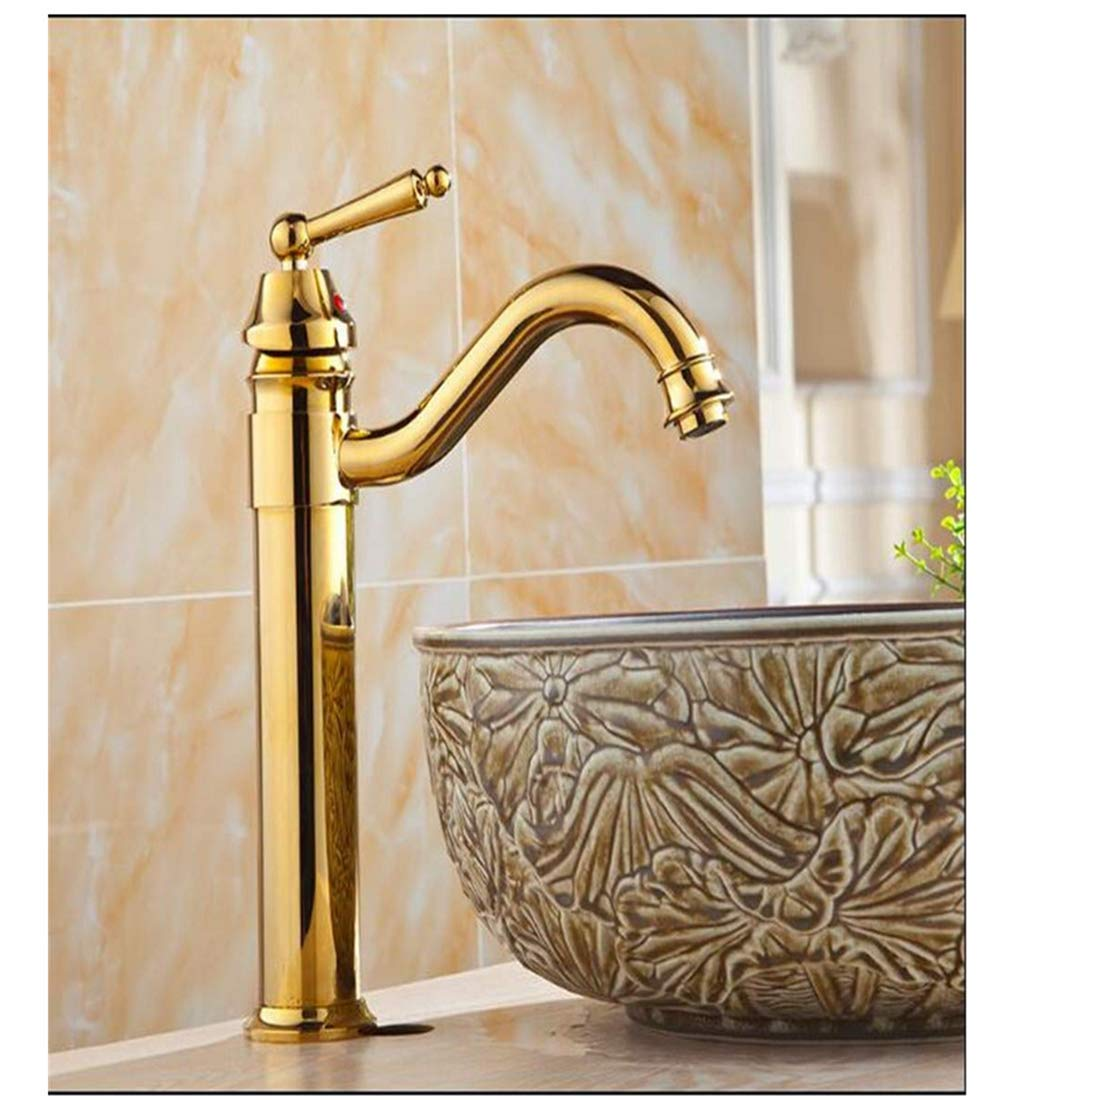 Chrome-Plated Adjustable Temperature-Sensitive Led Faucet Faucet Faucet Basin Faucet Basin Faucet Bathroom Washbasin Mixing Faucet